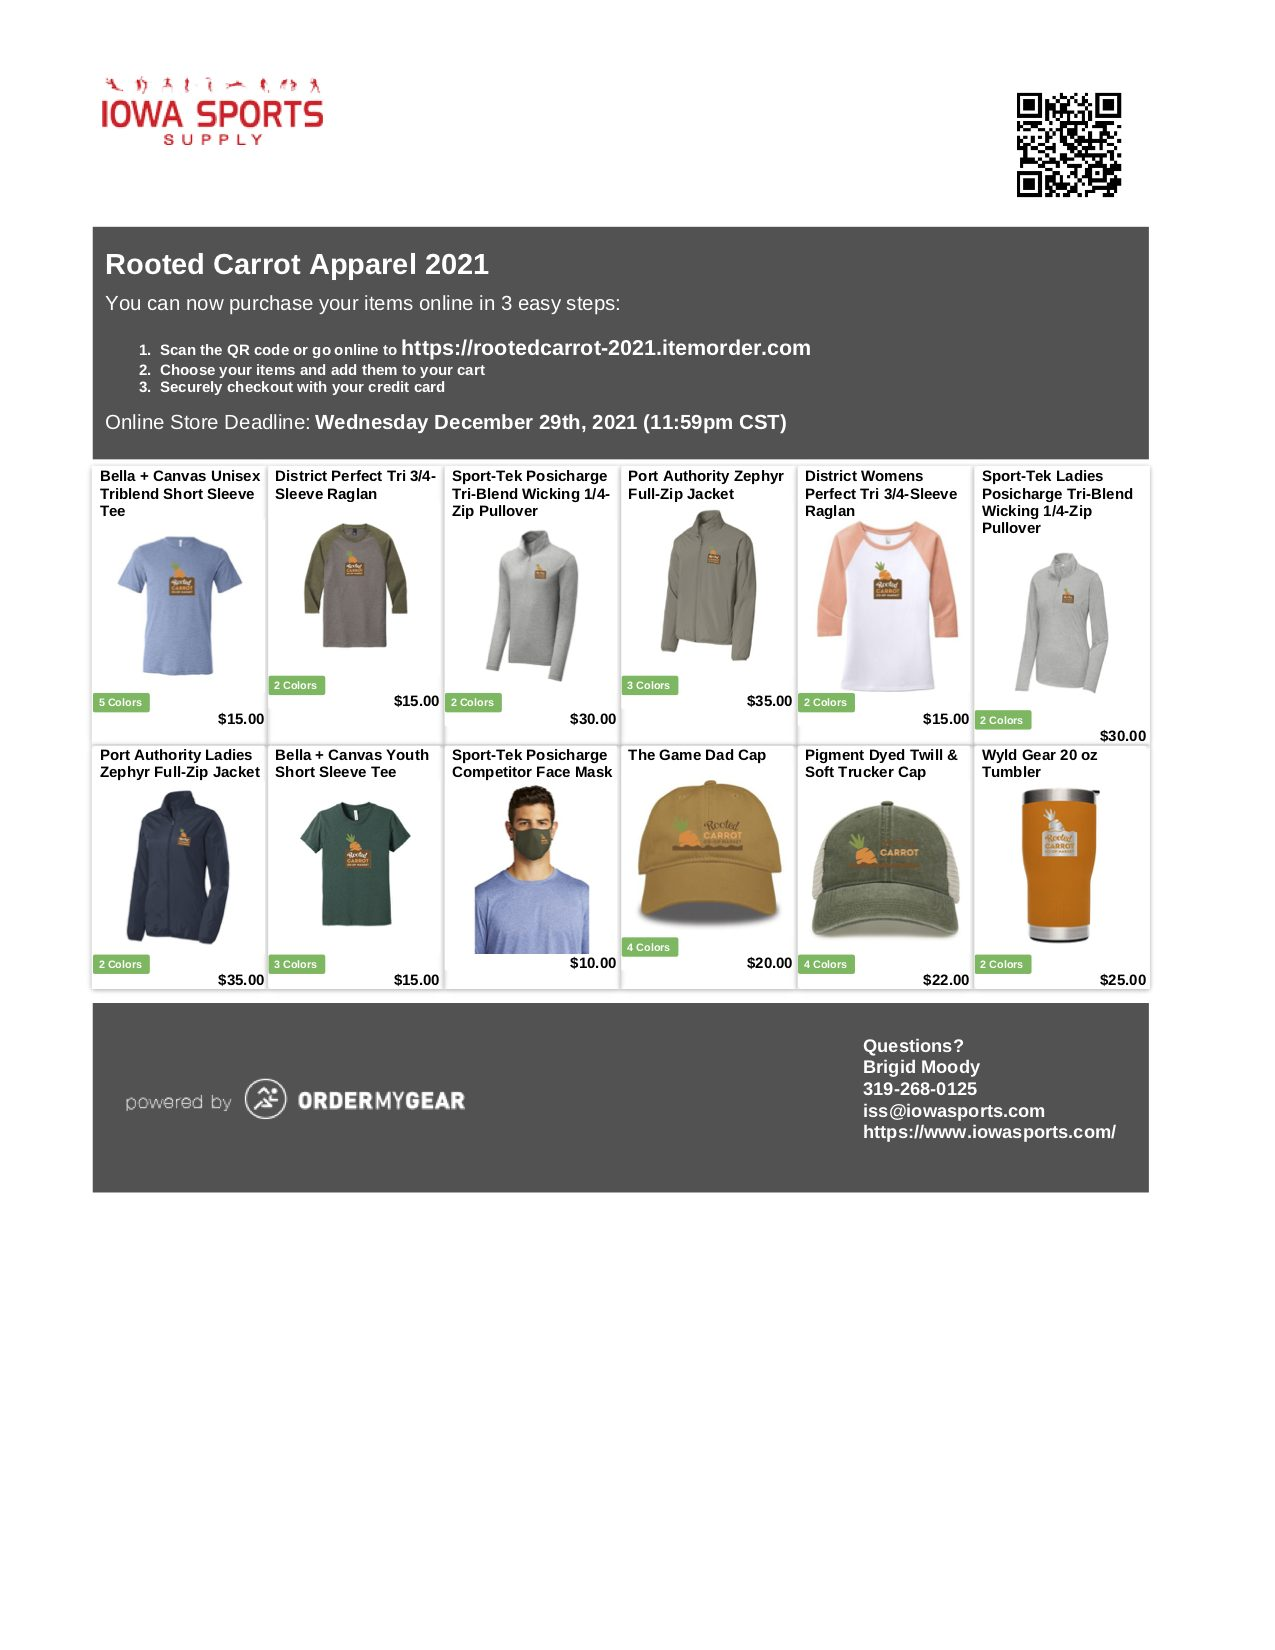 View of T-Shirts, Jackets, Hats and Cup with Rooted Carrot Logo